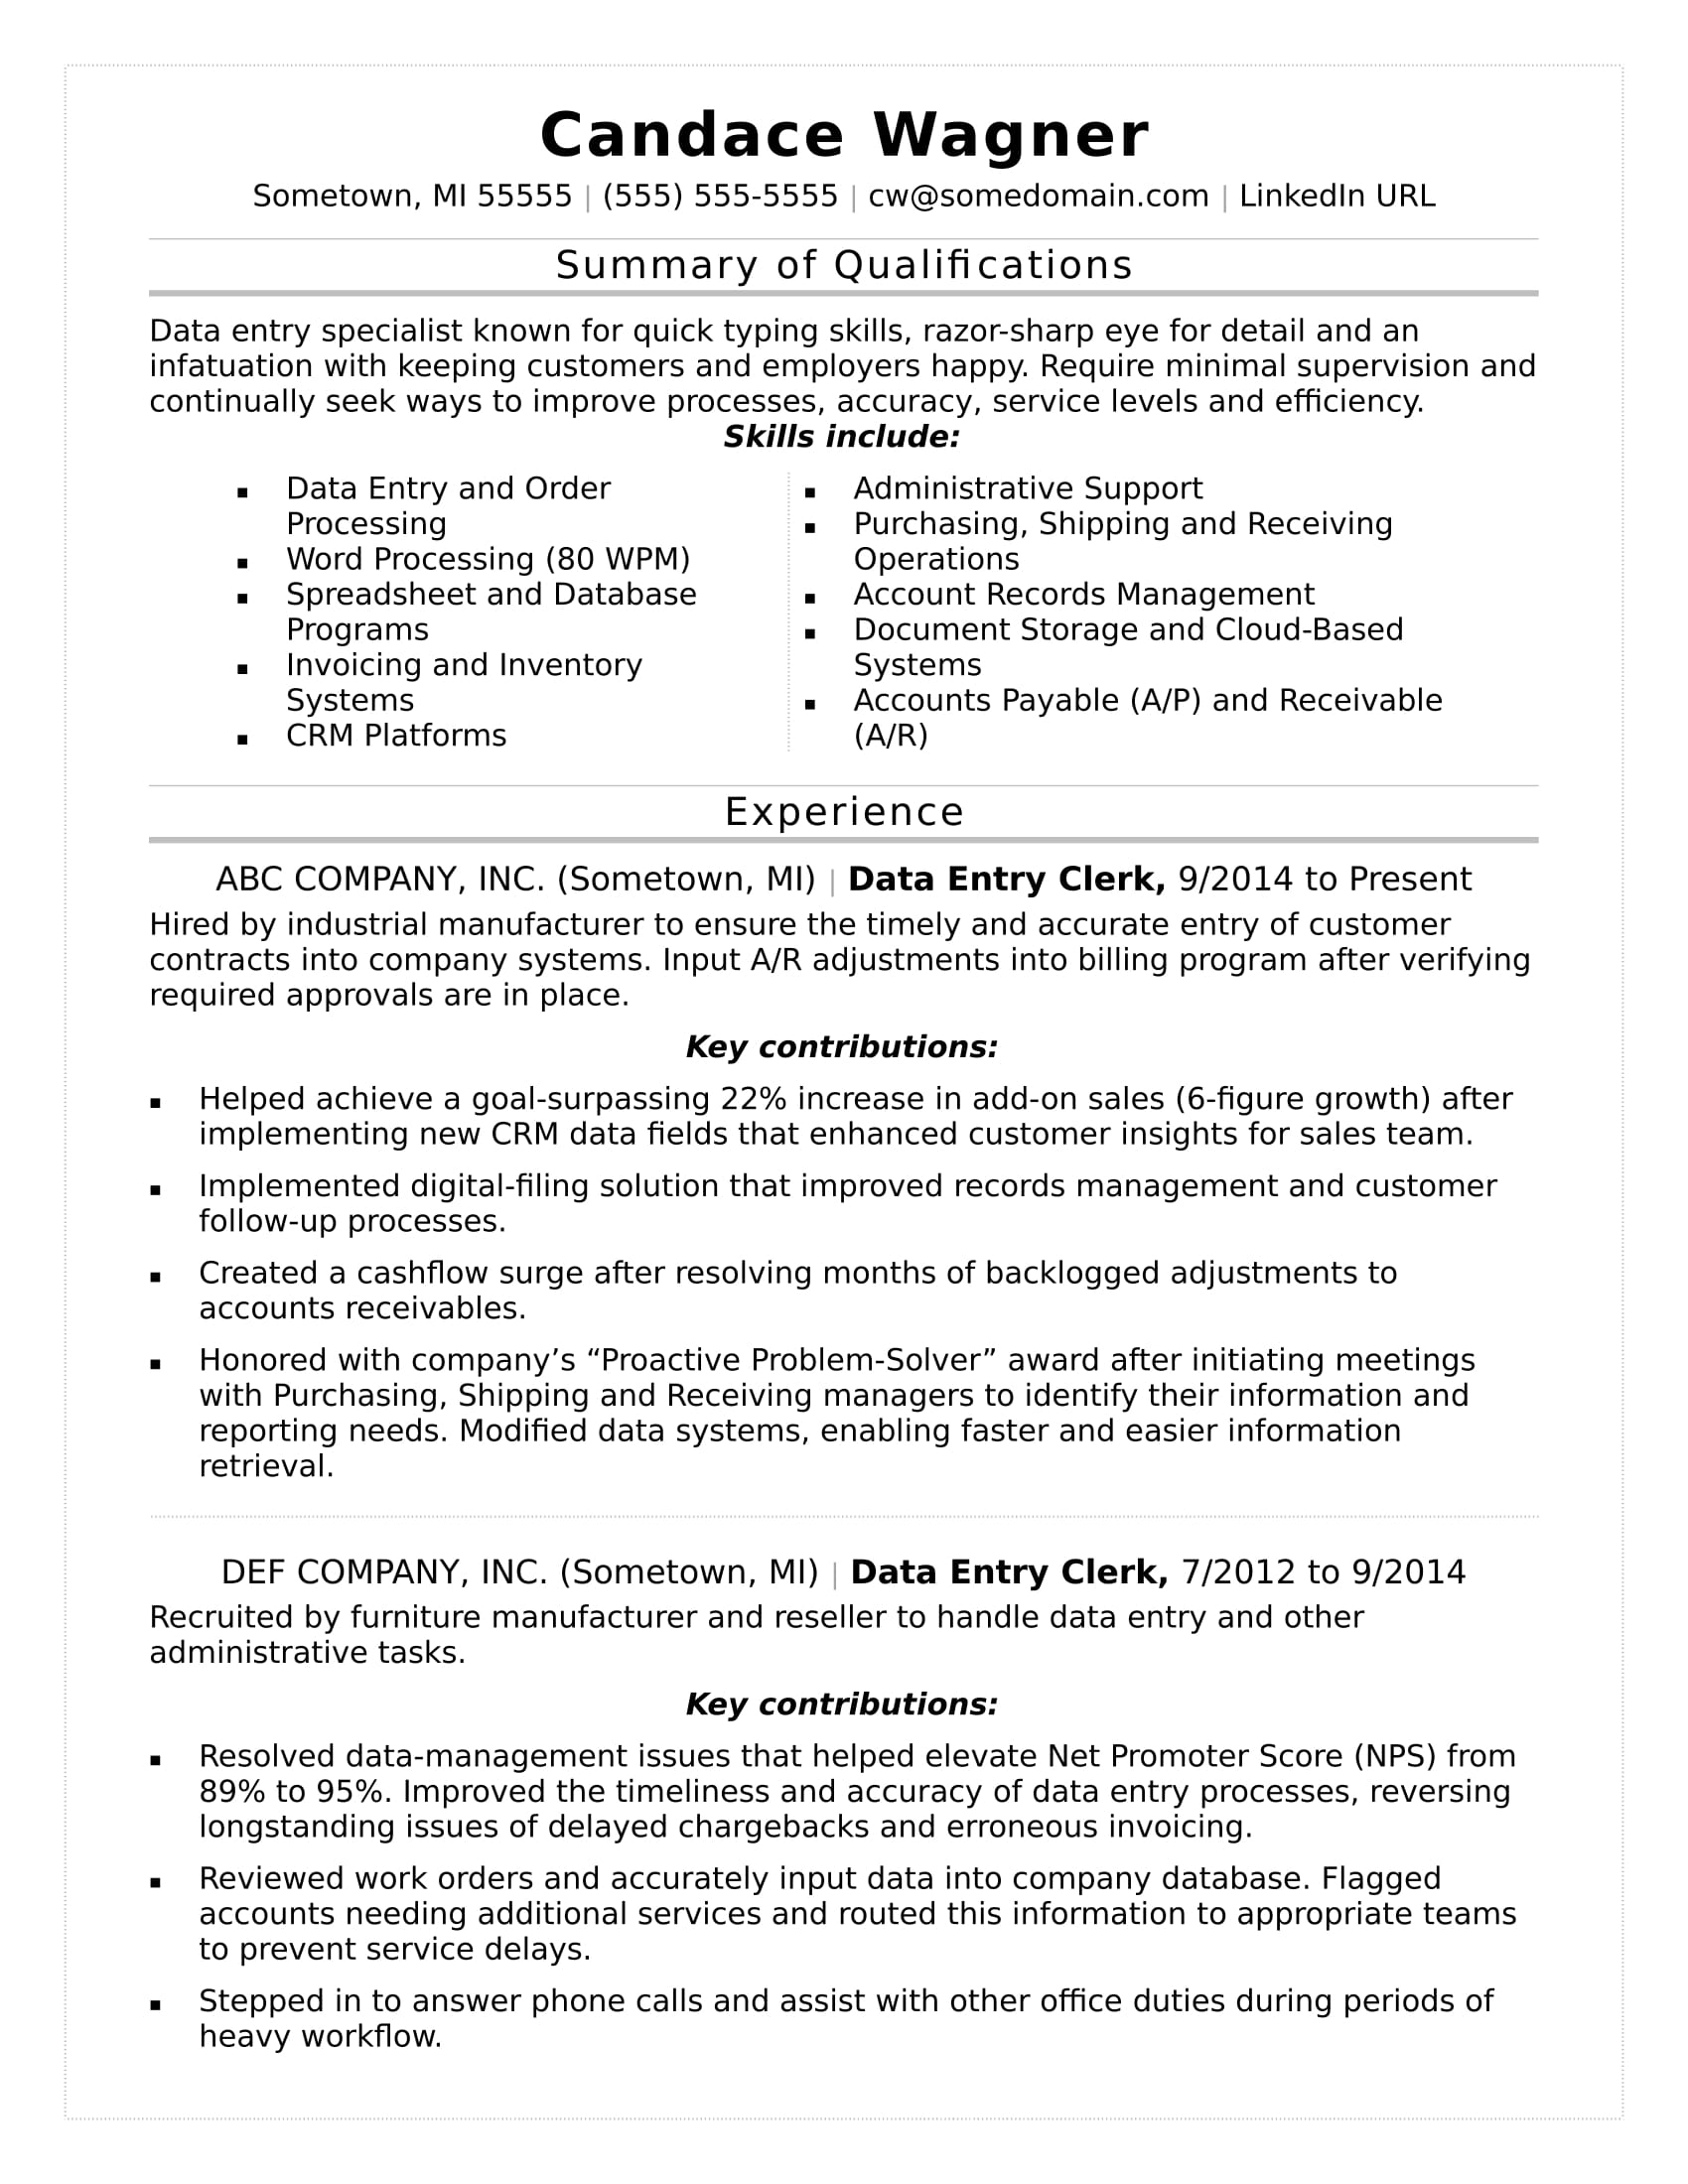 how to attach resume and cover letter on linkedin